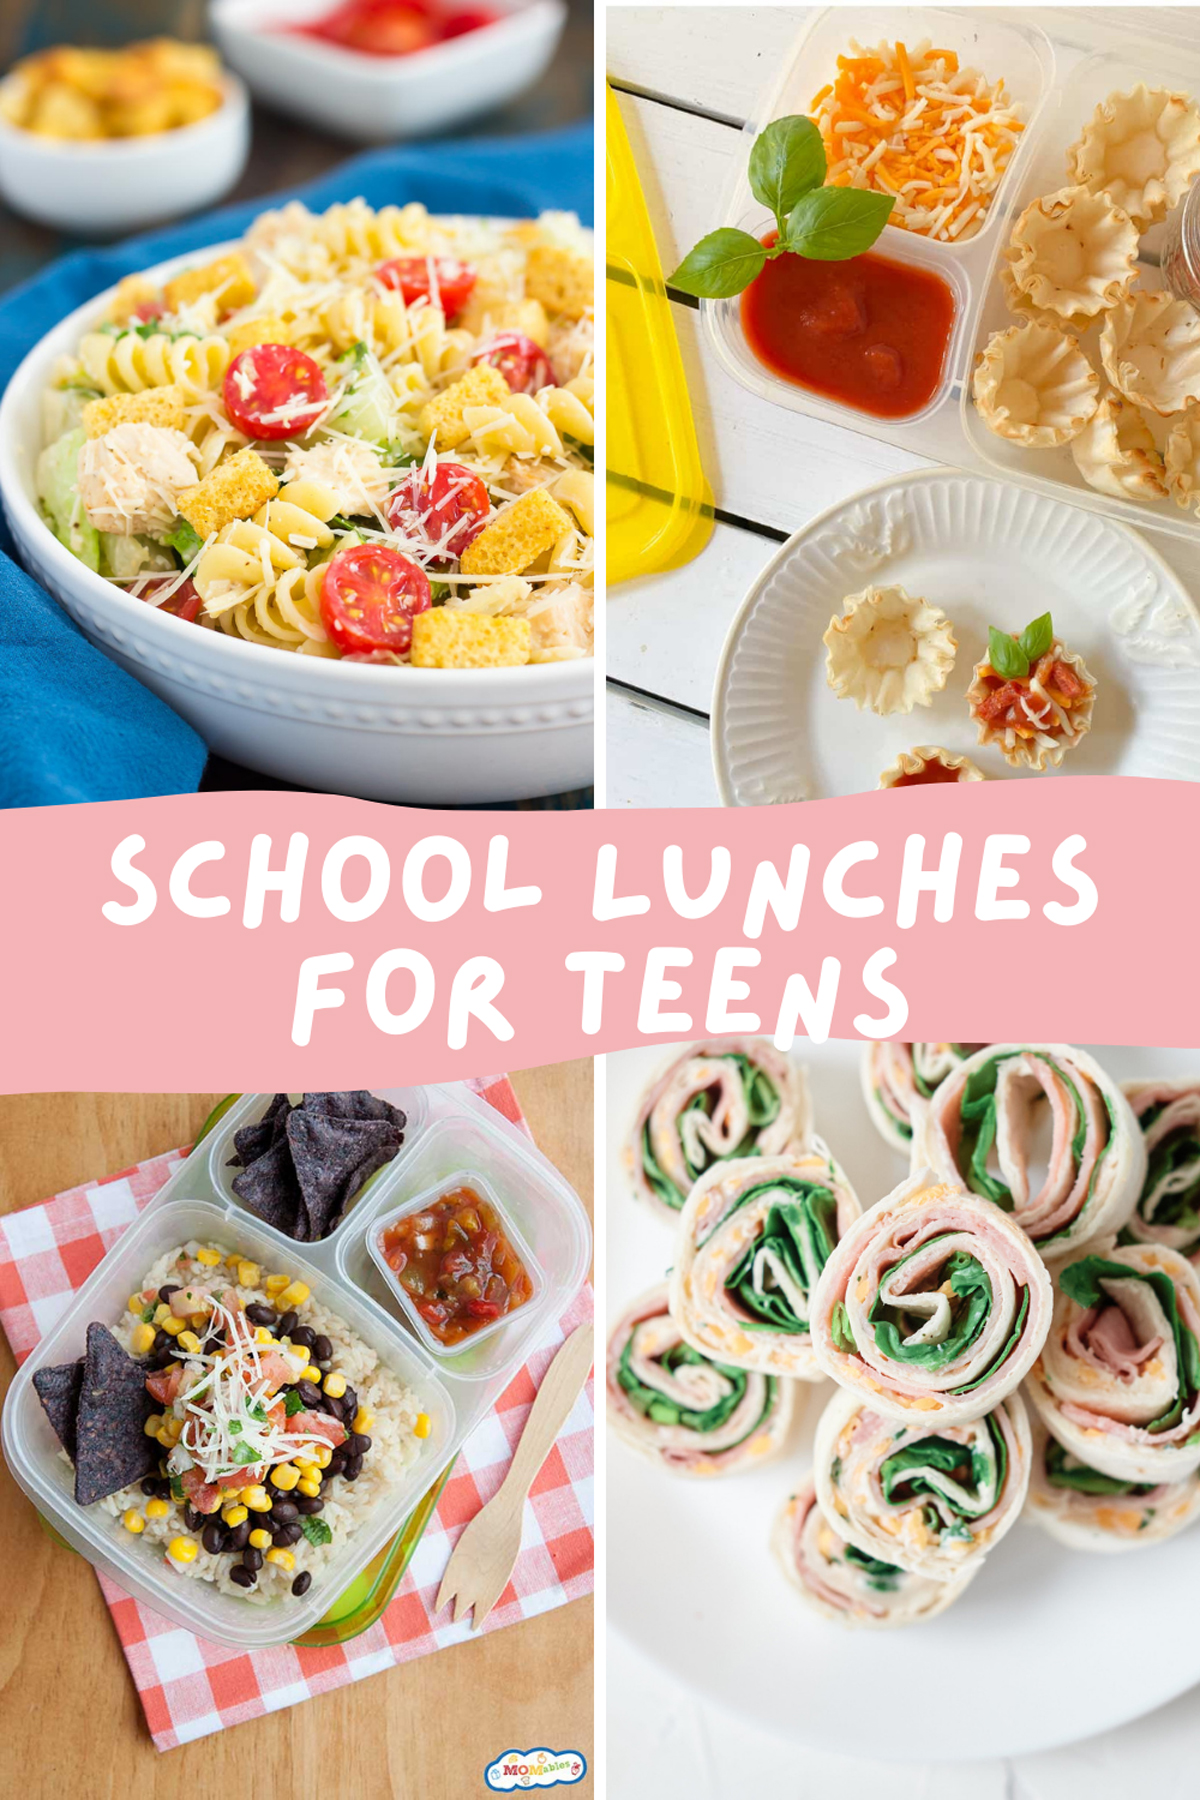 School Lunches for Teens